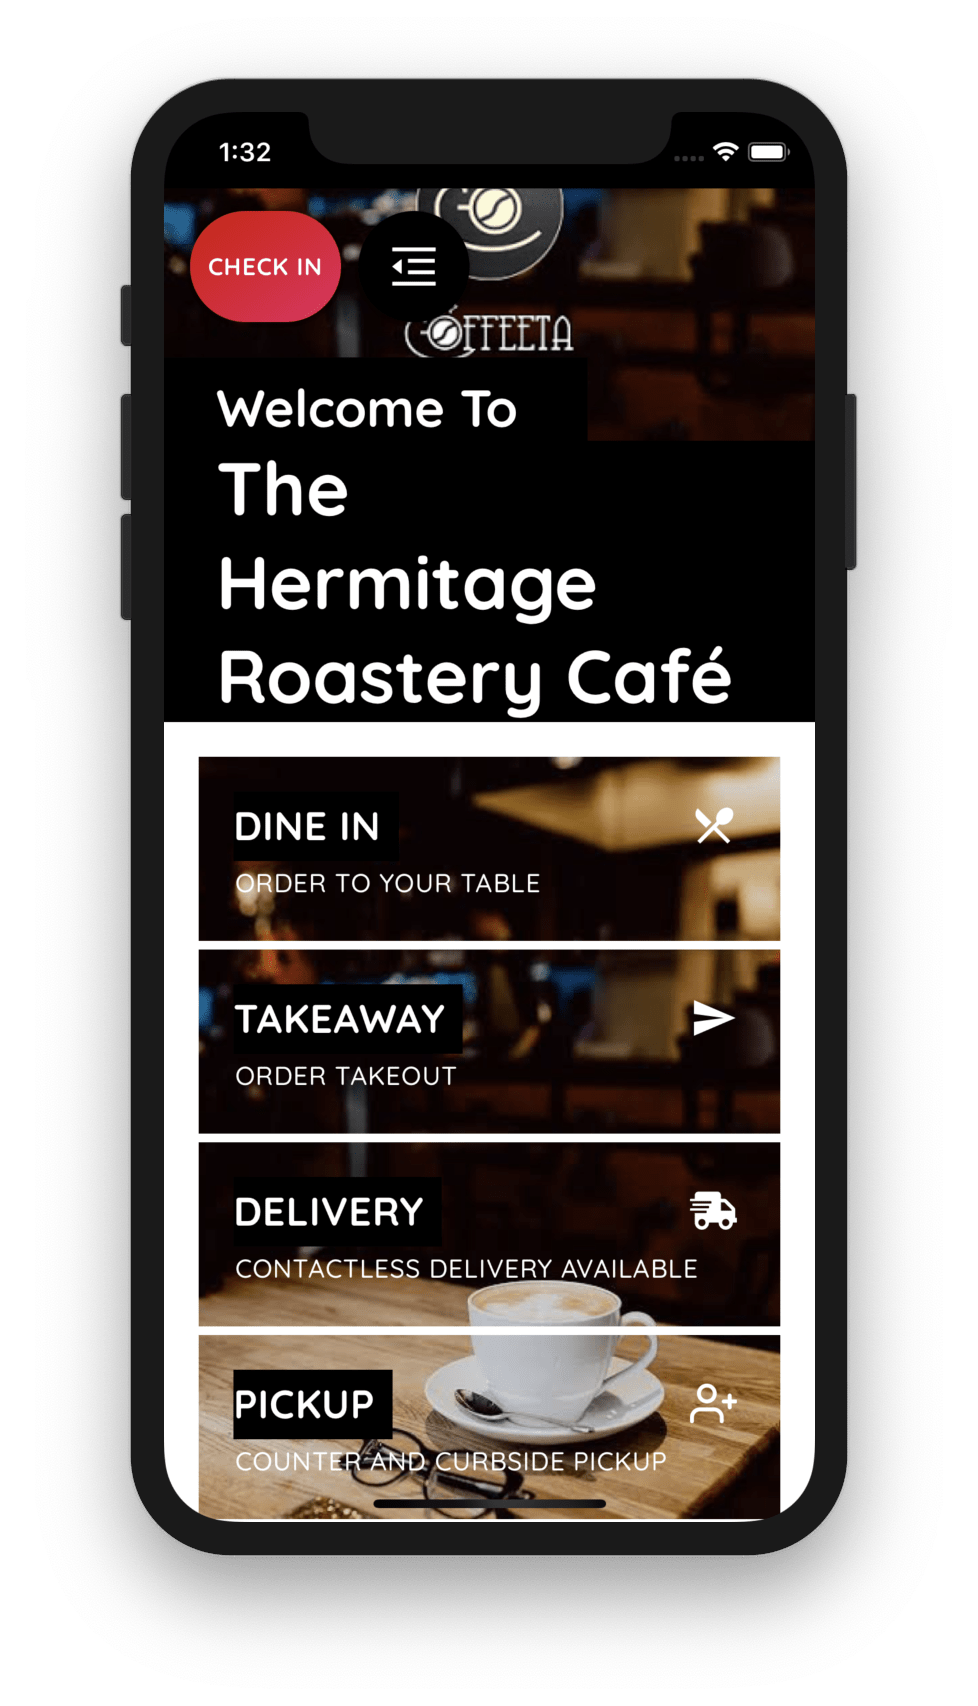 Orderlina - Contactless QR Menus For Restaurants & Hotels, Orderlina Online Ordering That Grows Your Brand